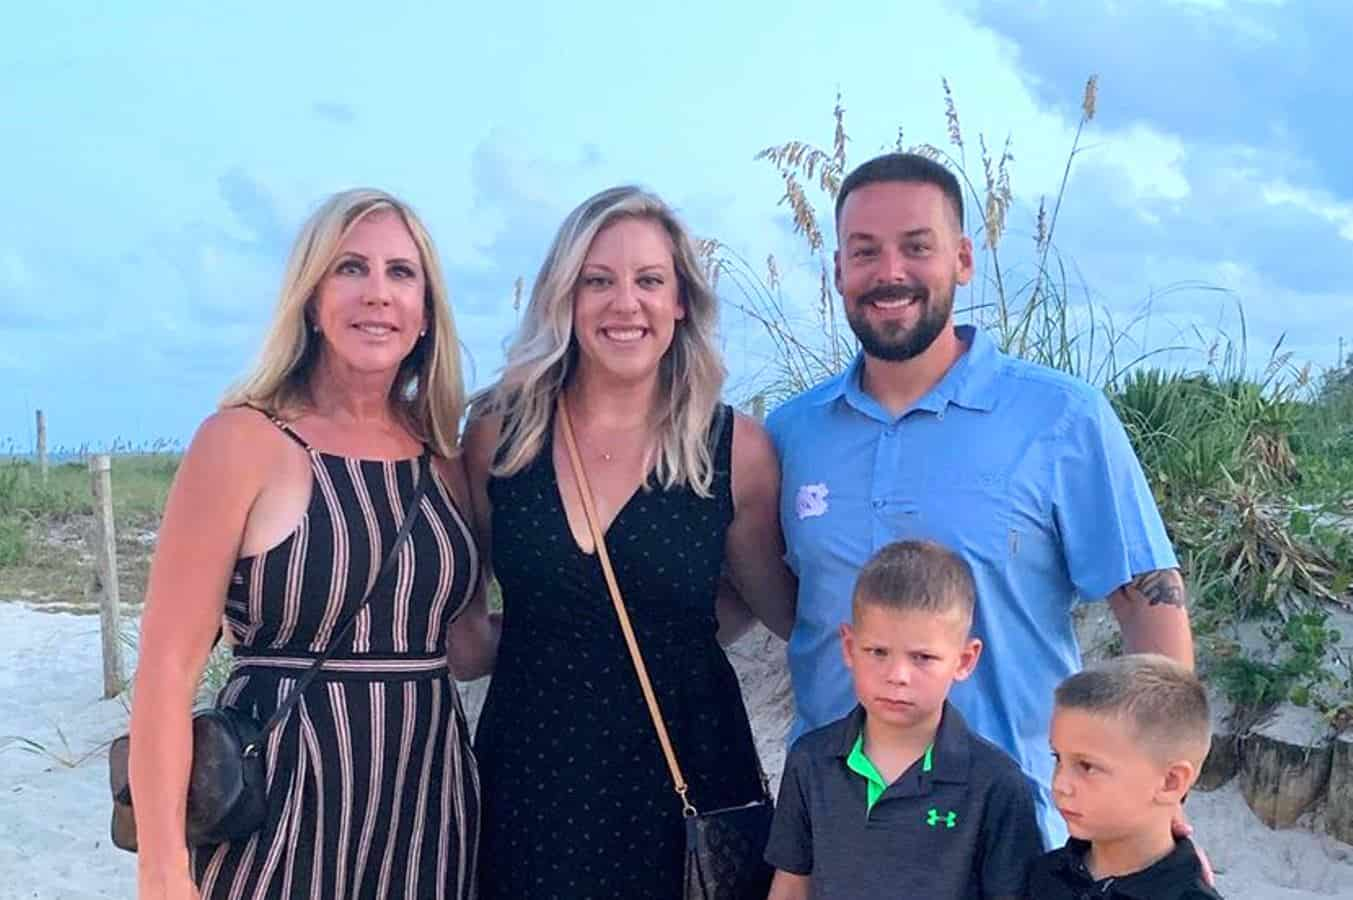 RHOC's Ryan and Briana Culberson Are Moving Out of North Carolina as Vicki Gunvalson is Also Selling Her Lake Home in NC, Vicki Explains Home Sale Plus Why Briana and Ryan are Relocating